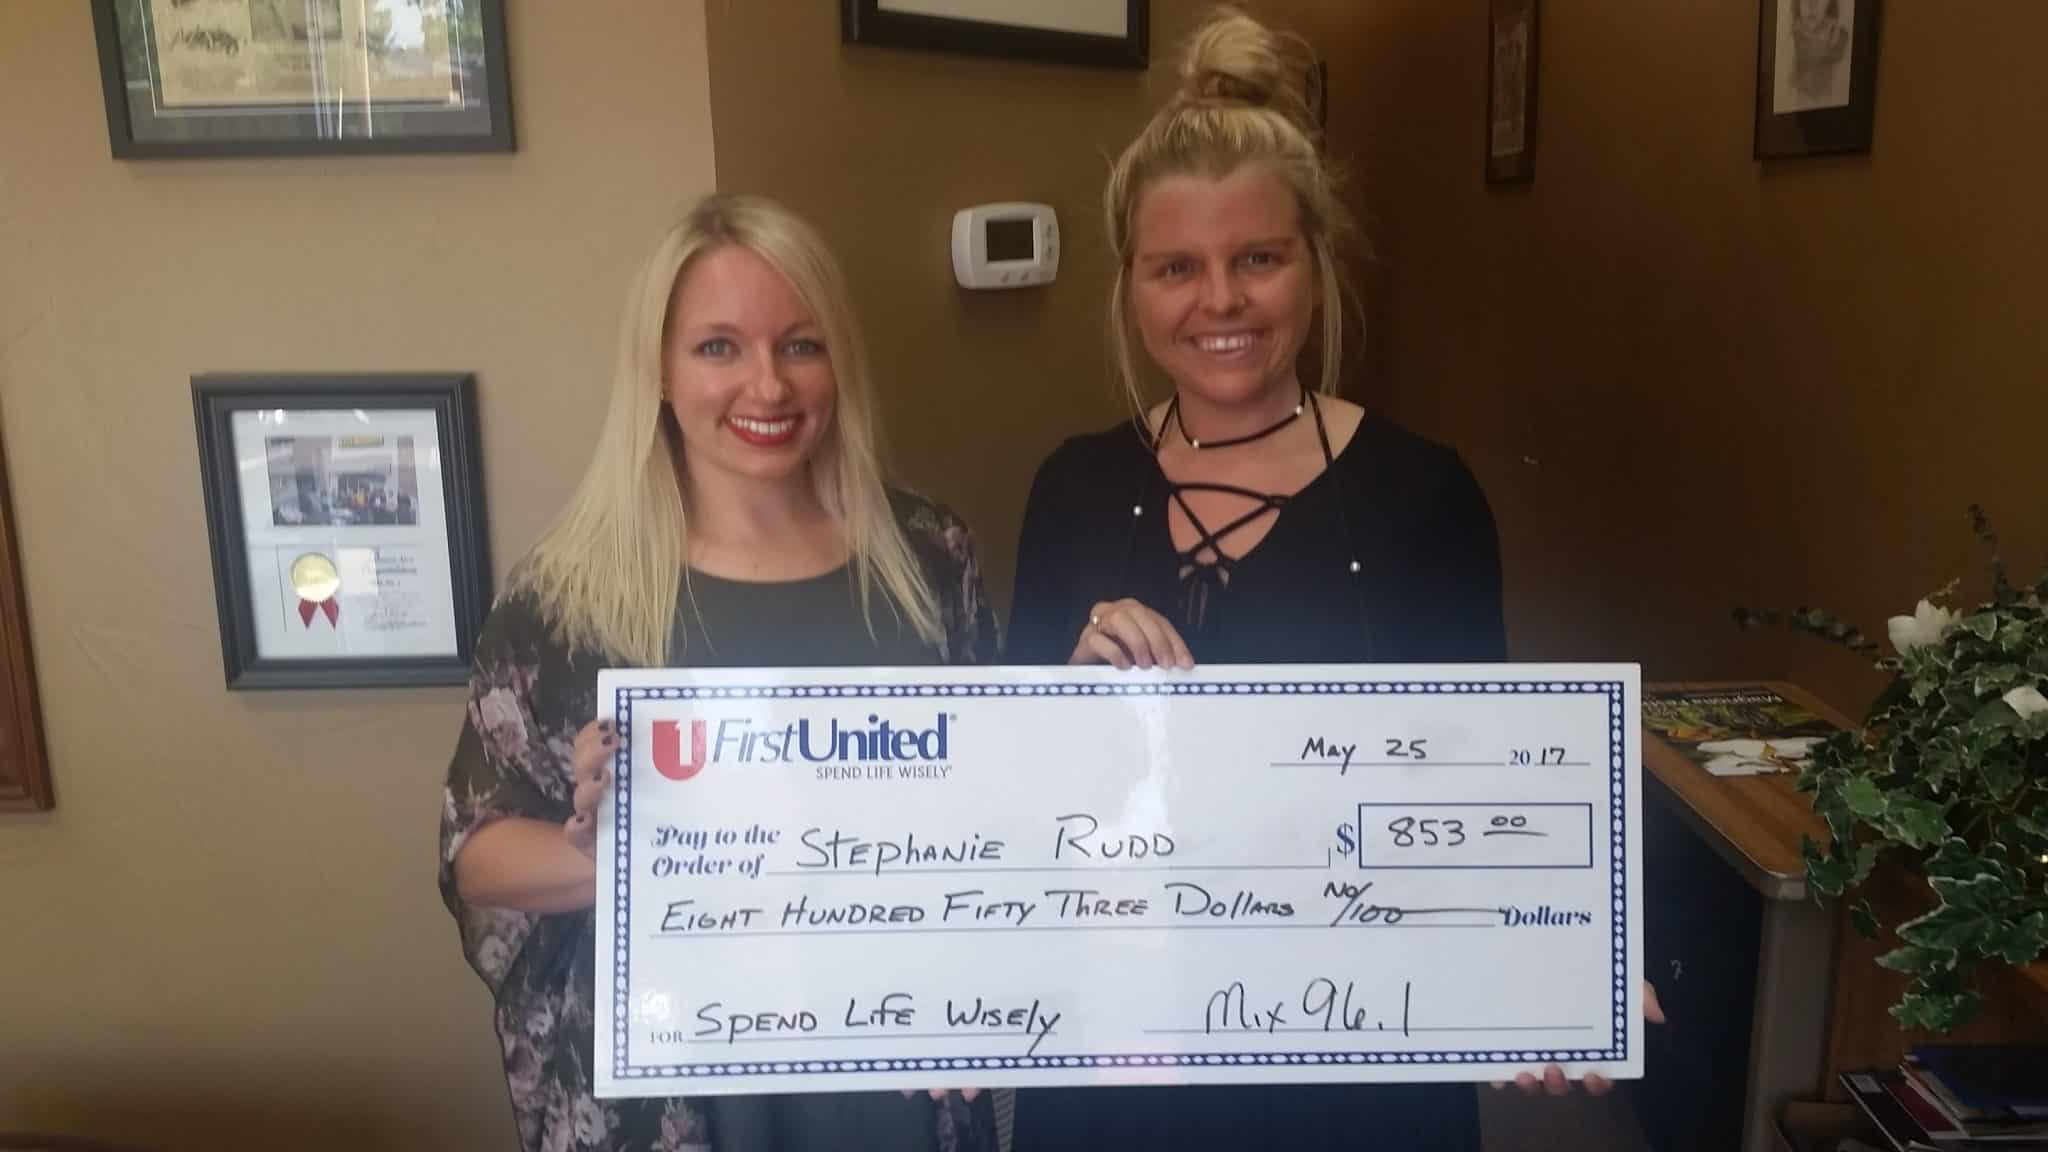 Our latest Spend Life Wisely Winner Stephanie Rudd won $853